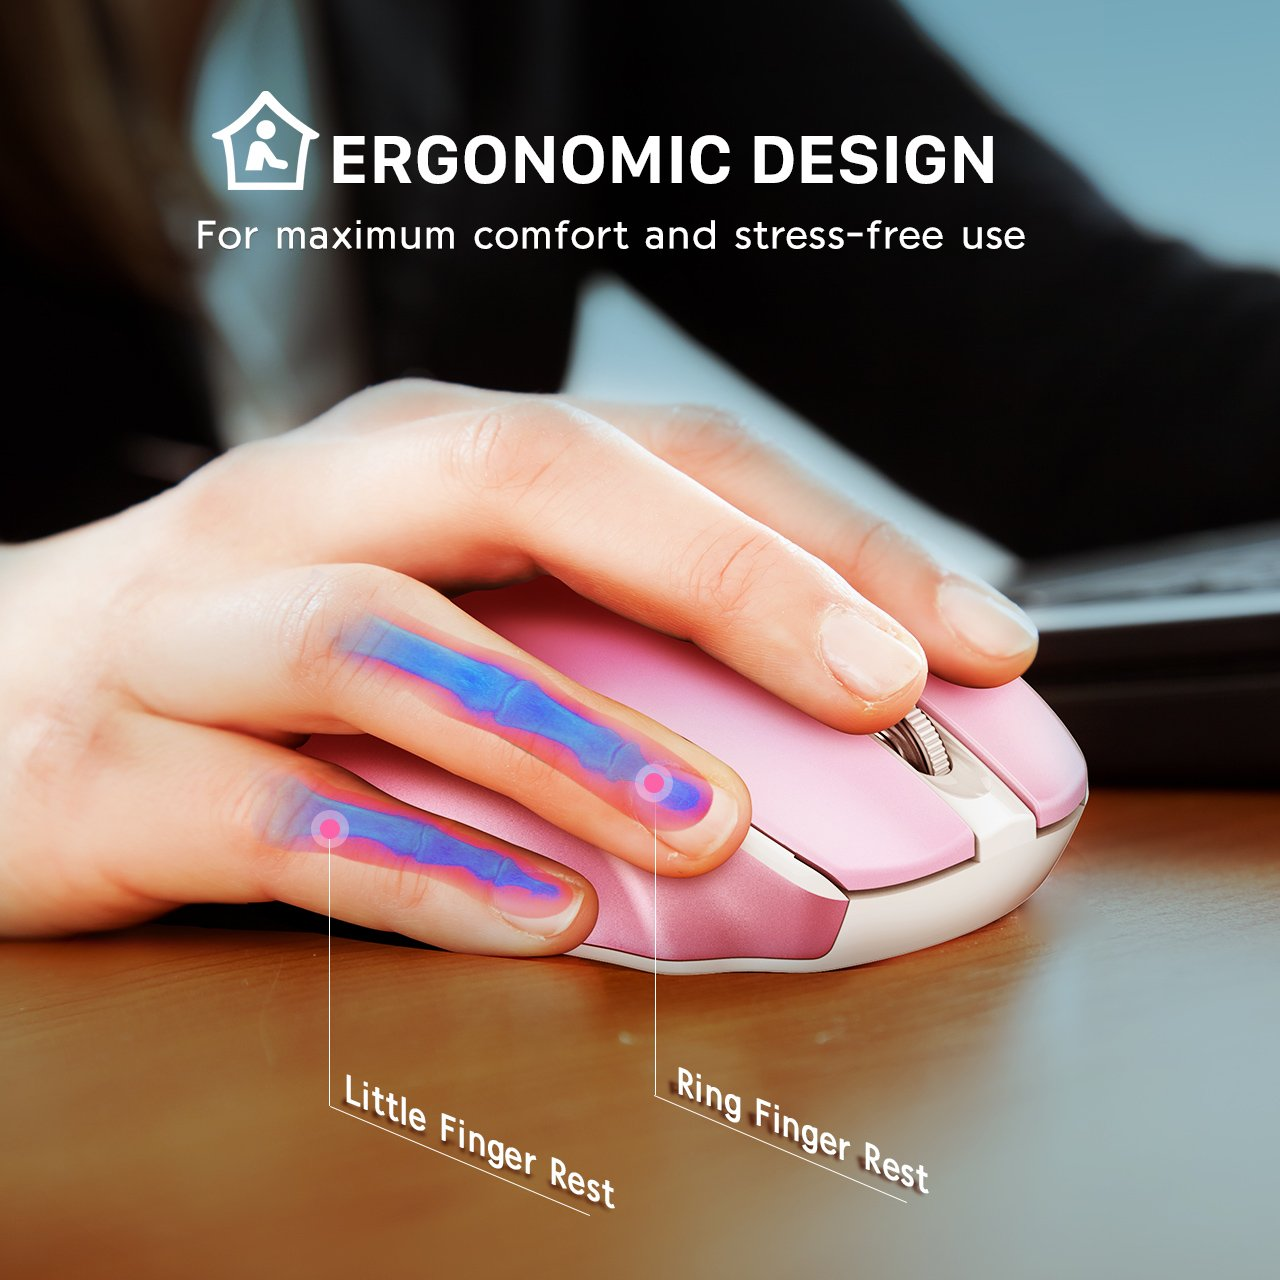 VicTsing MM057 2.4G Wireless Portable Mobile Mouse Optical Mice with USB Receiver, 5 Adjustable DPI Levels, 6 Buttons for Notebook, Pink by VicTsing (Image #2)